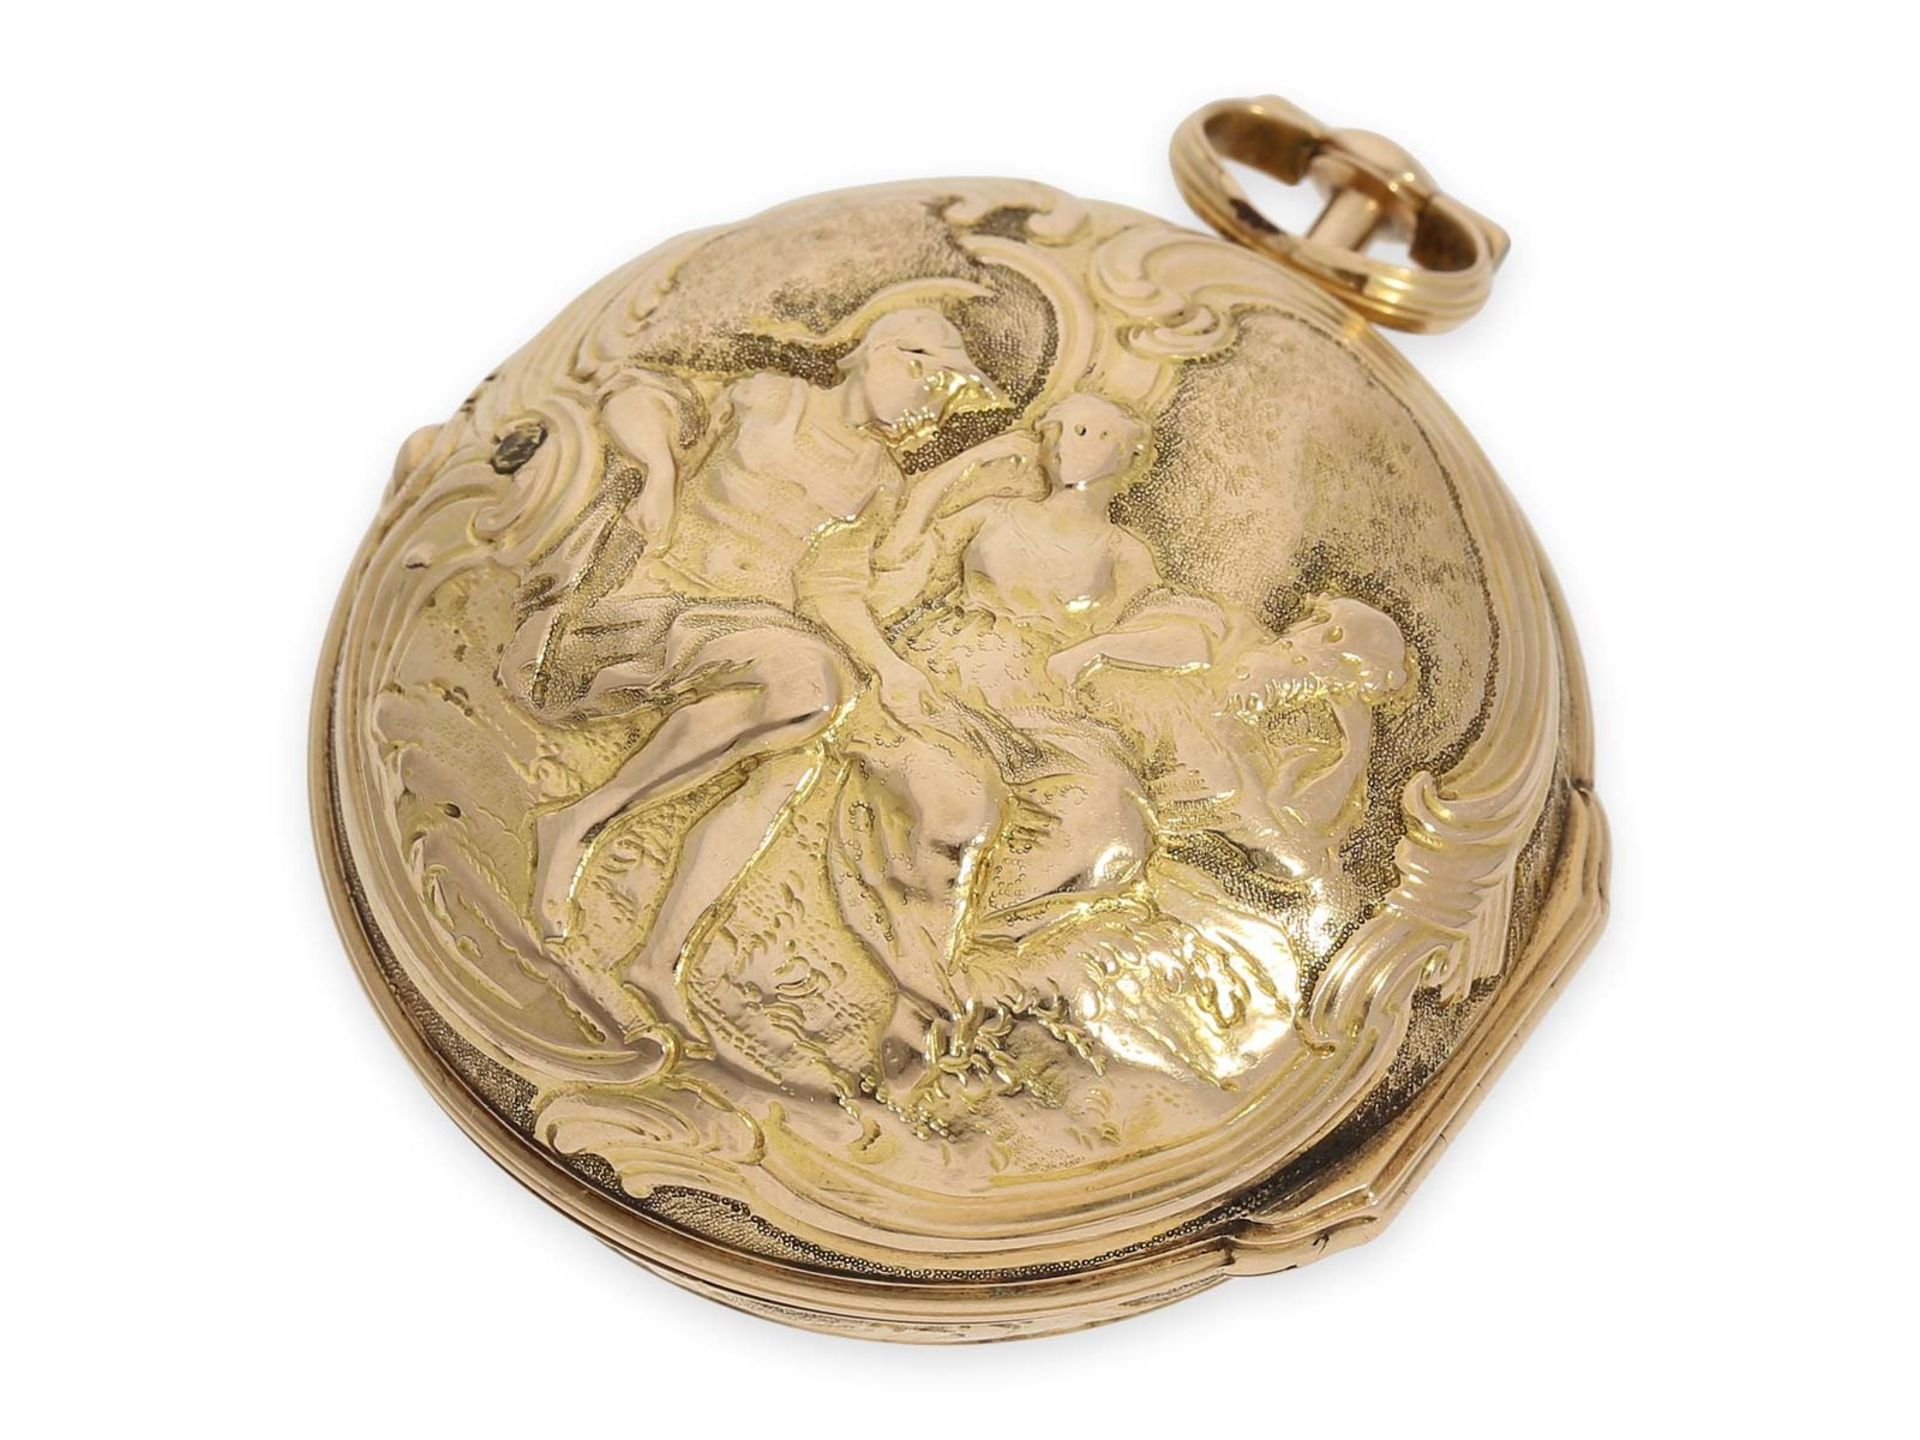 Pocket watch: early triple case gold repousse verge watch, signed Rose London, ca. 1770 - Bild 7 aus 8